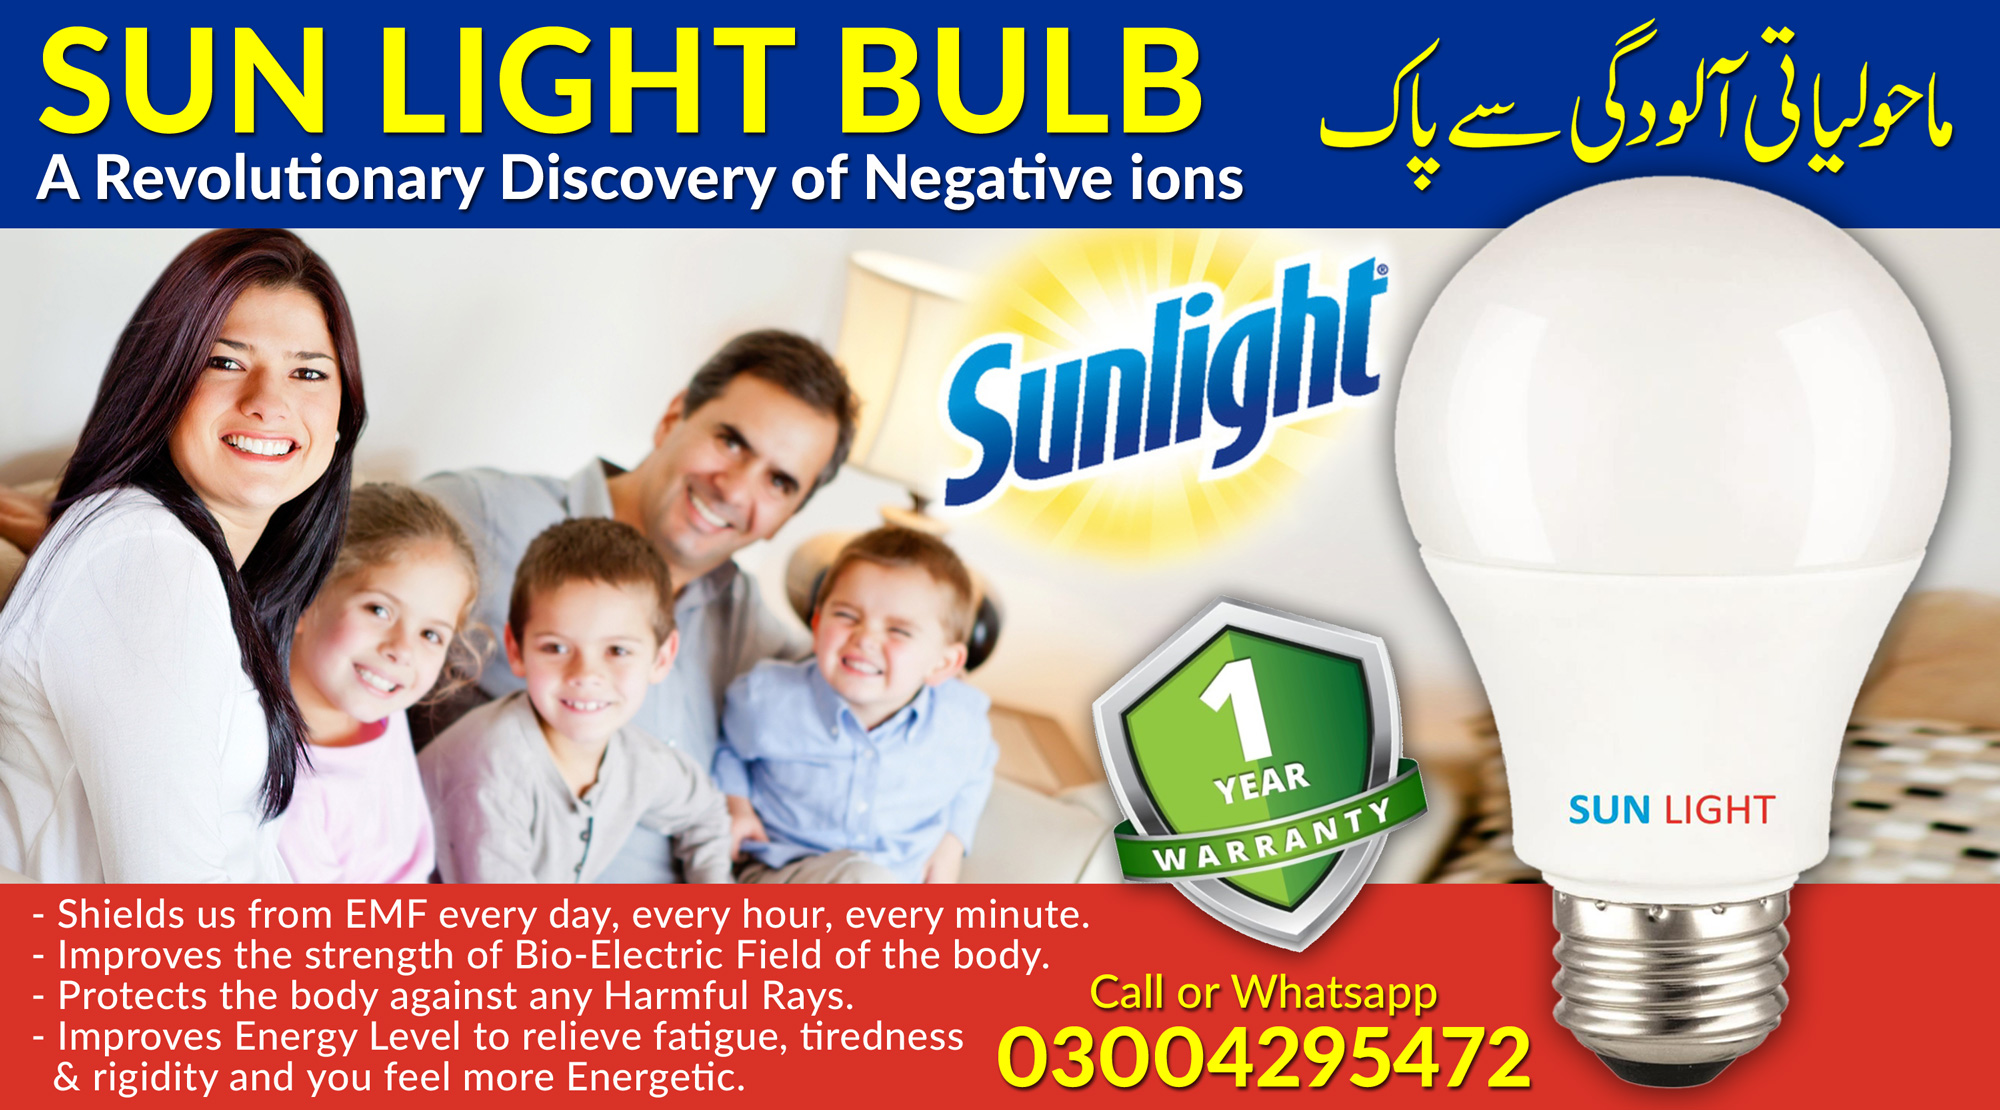 Sun Light Bulb in Pakistan, Air Purifier Negative Ion LED Bulb in Pakistan